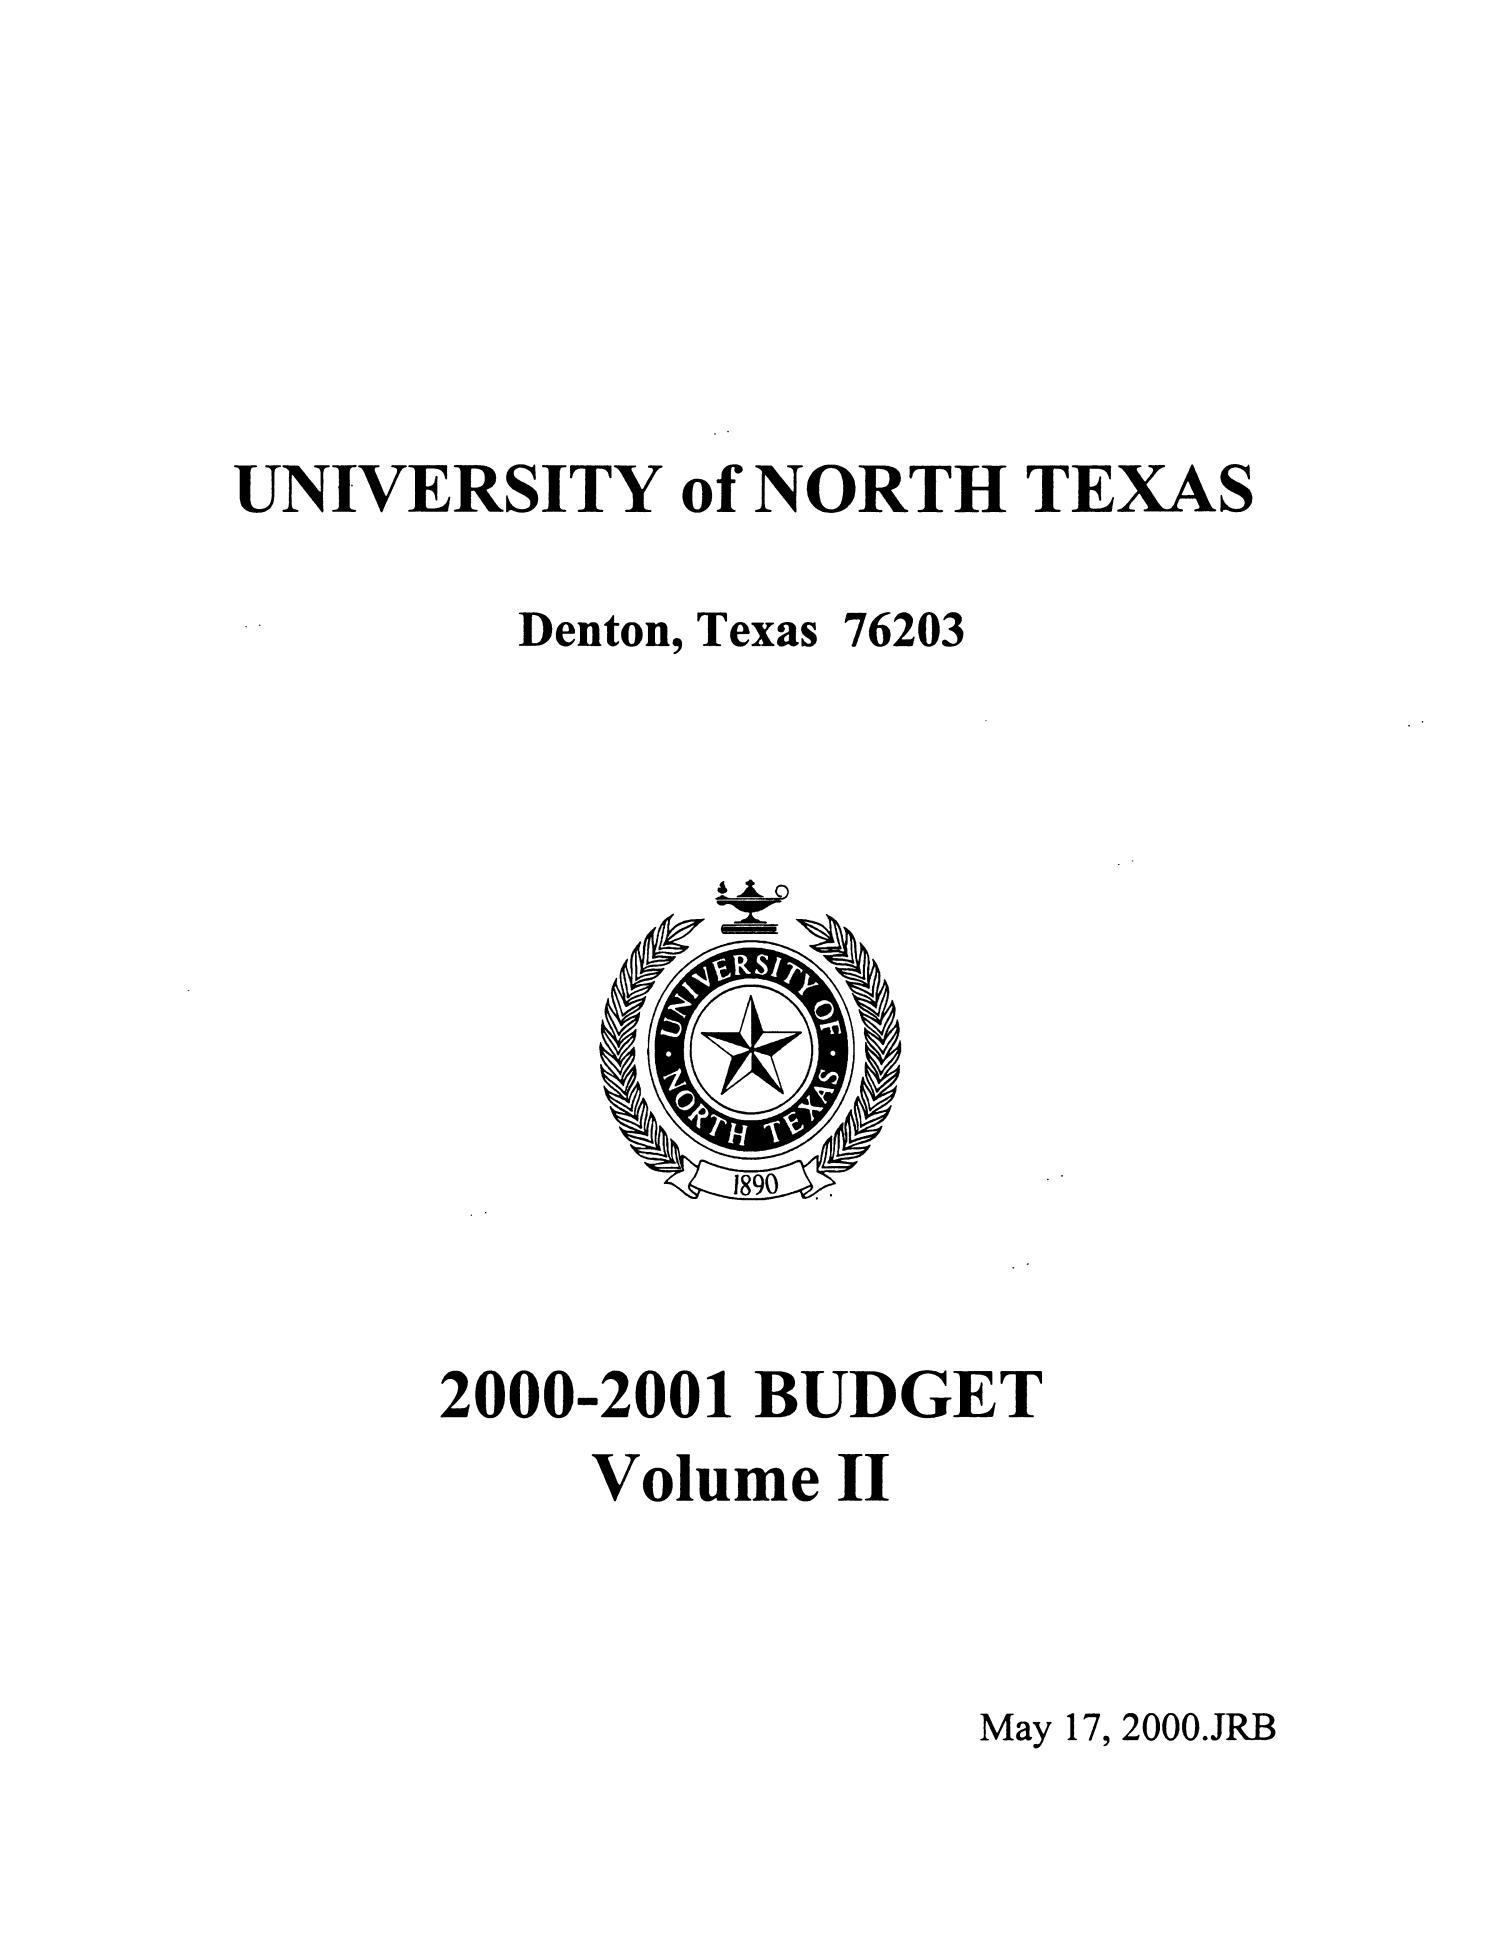 University of North Texas Budget: 2000-2001, Volume 2                                                                                                      Title Page